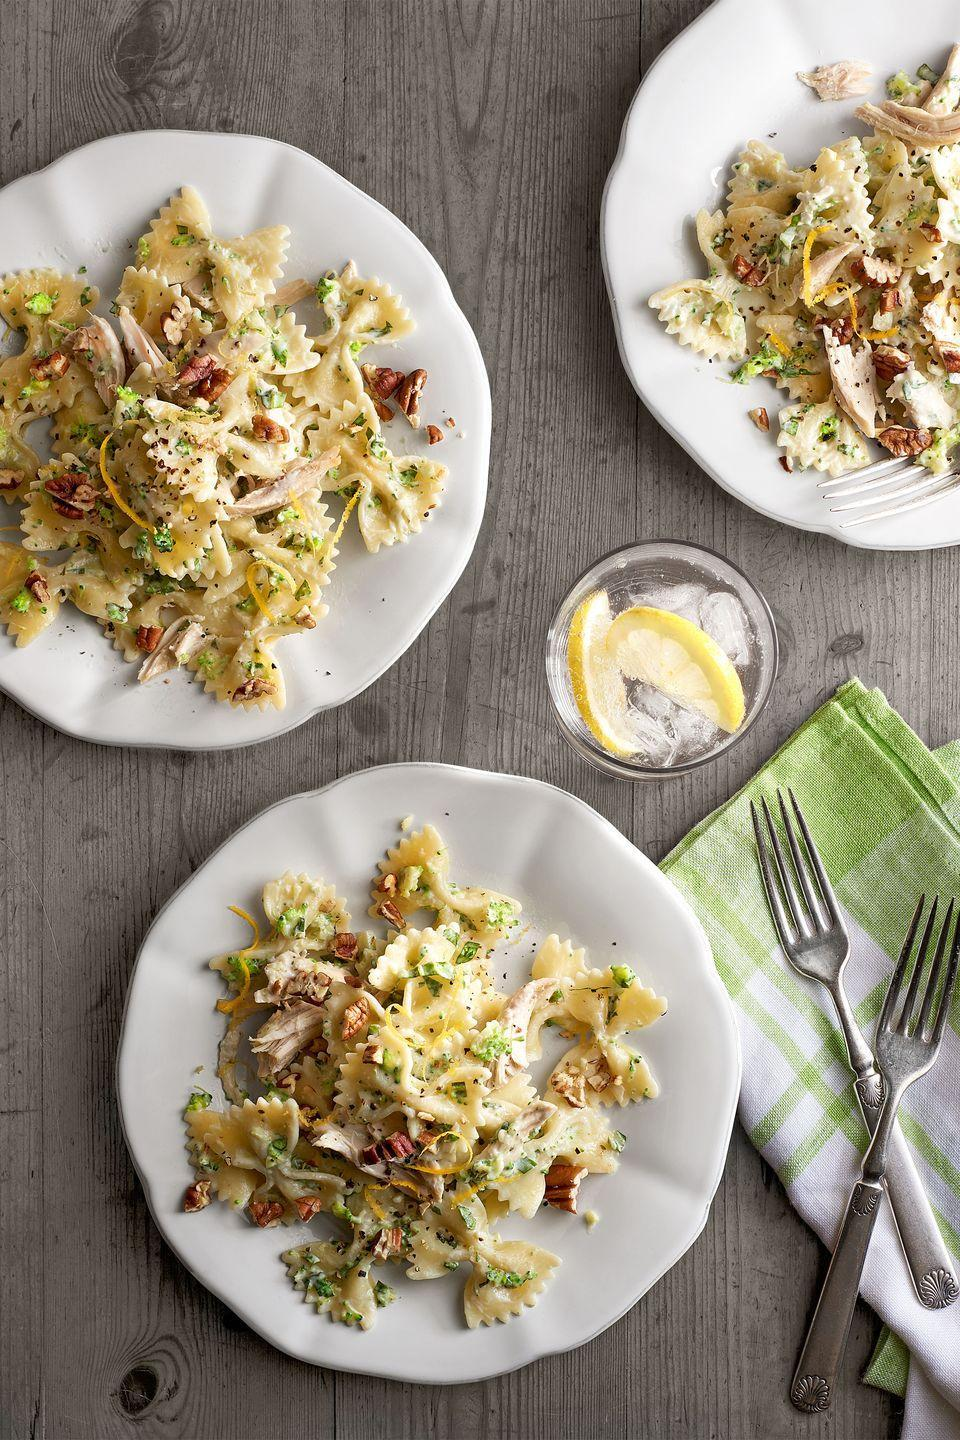 "<p>Toasted pecans add unexpected warmth and crunch to this creamy pasta dish.</p><p><strong><a href=""https://www.countryliving.com/food-drinks/recipes/a6297/creamy-chicken-broccoli-pesto-bow-ties-recipe-clx0215/"" rel=""nofollow noopener"" target=""_blank"" data-ylk=""slk:Get the recipe"" class=""link rapid-noclick-resp"">Get the recipe</a>.</strong></p>"